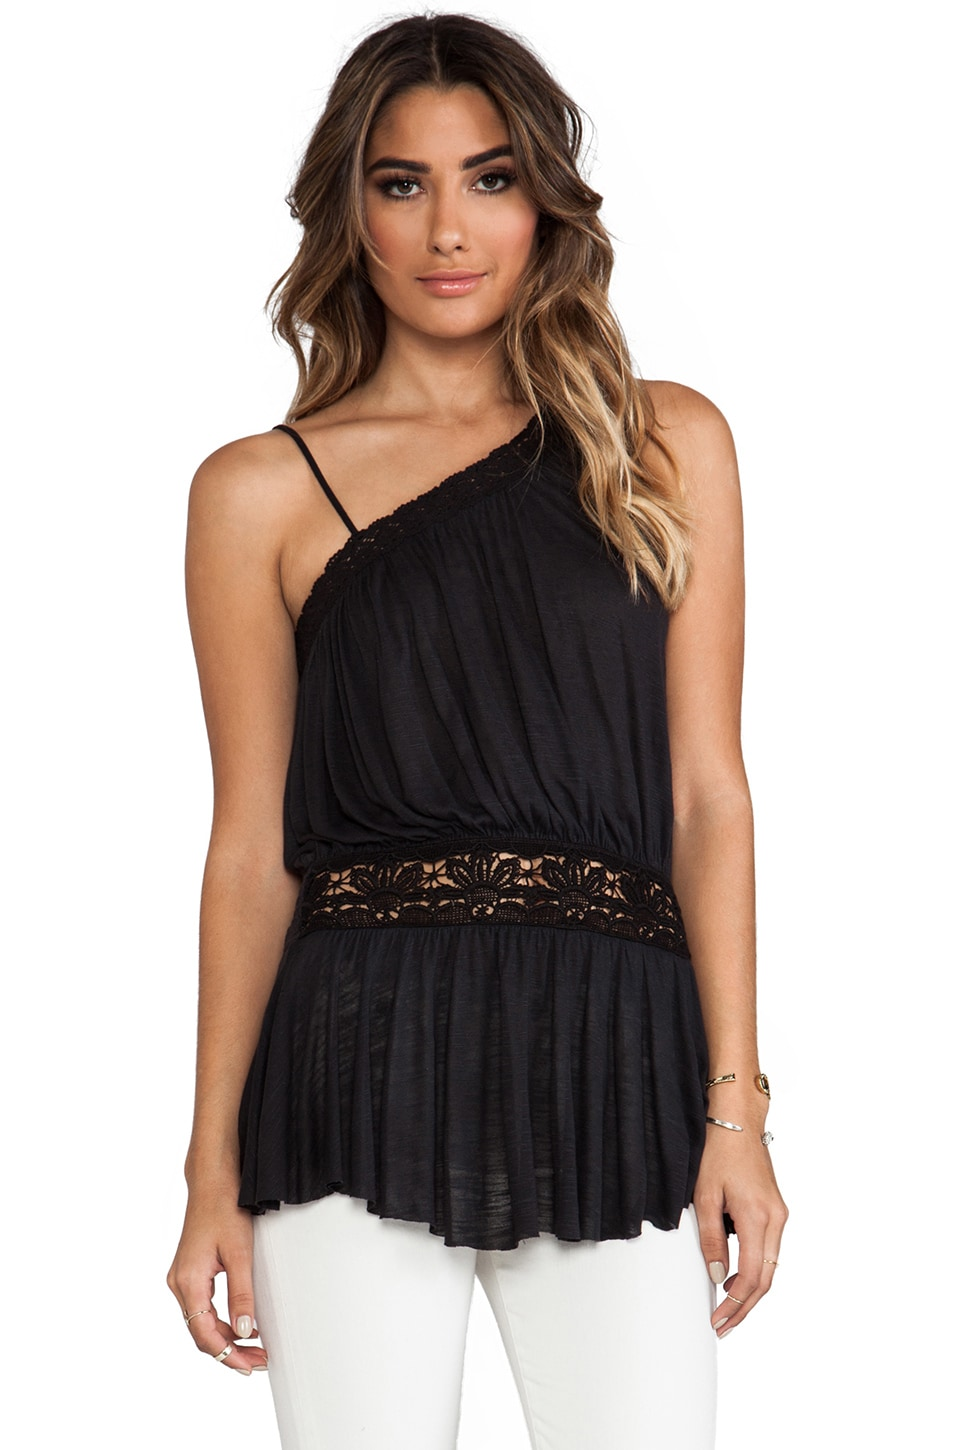 Free People Summer Haze One Shoulder Top in Black